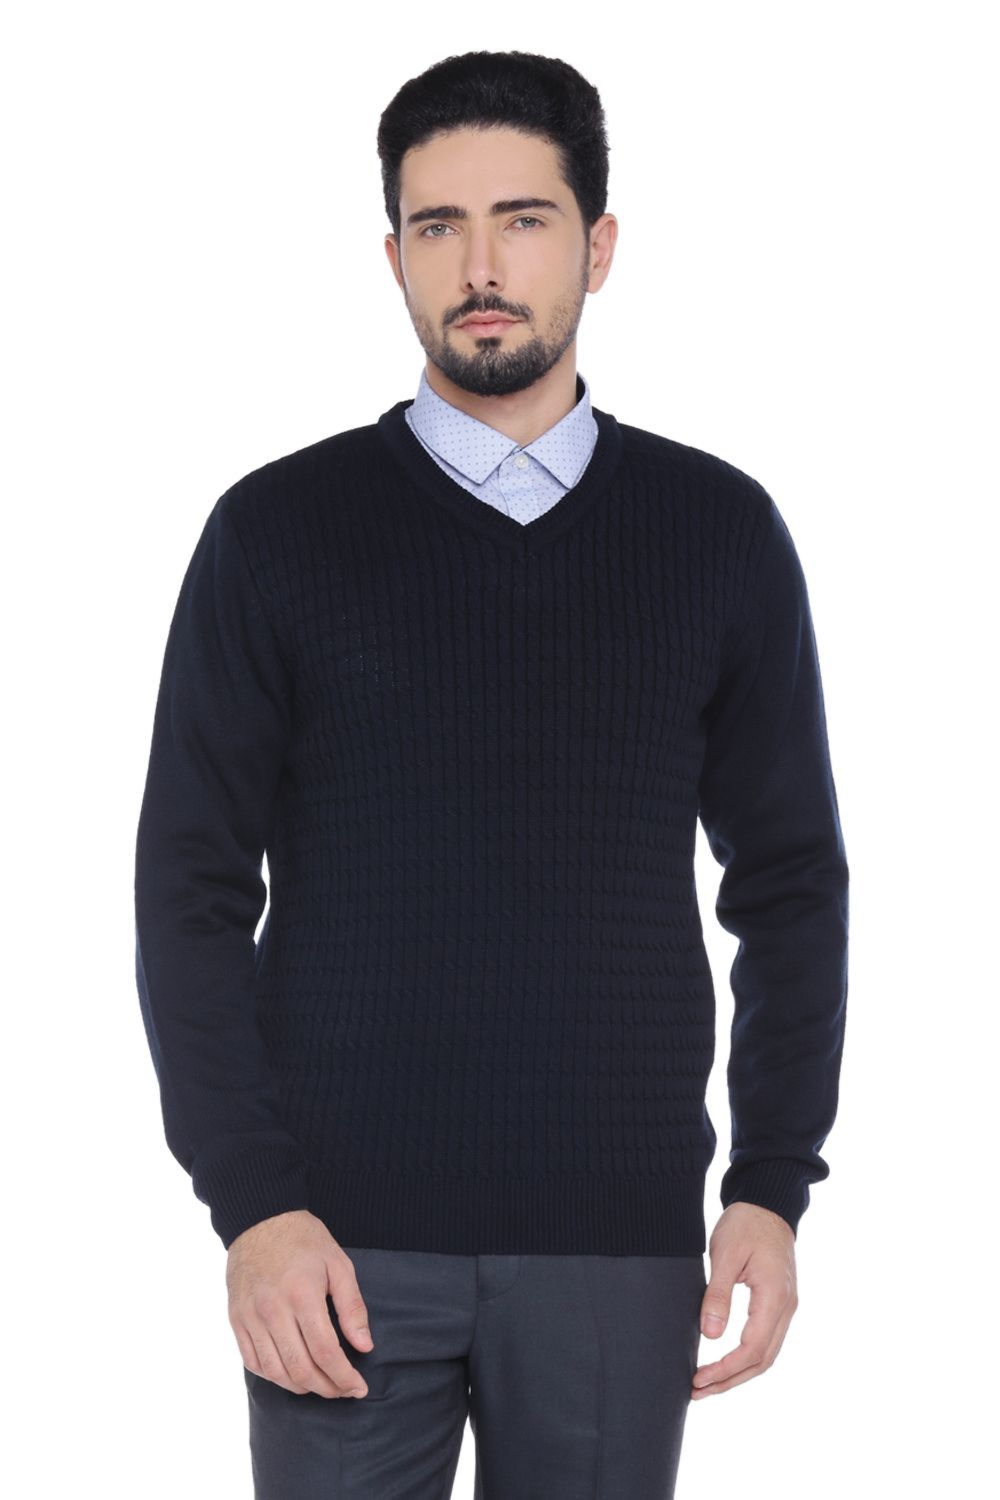 bf799726623 Shop Sweaters for Men Online in India at Pantaloons Online Store